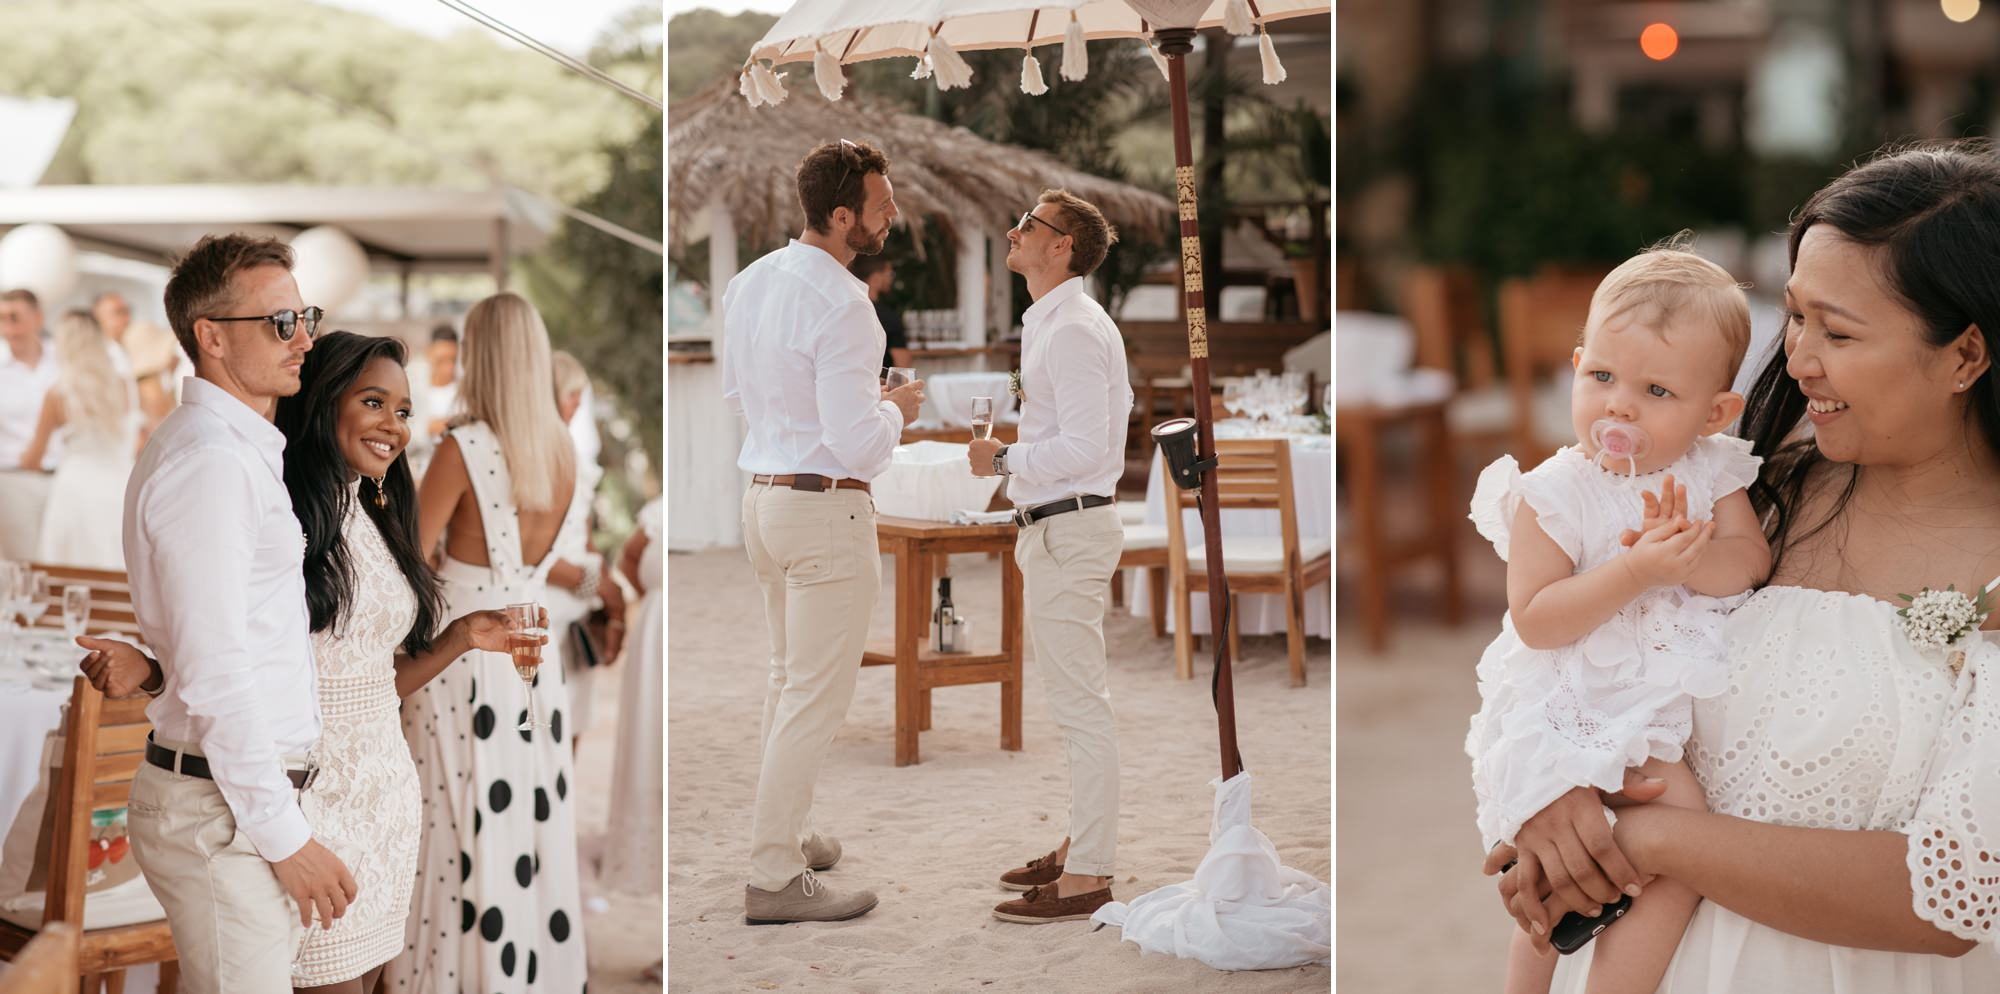 natural wedding photo destination la escollera ibiza 0039 1